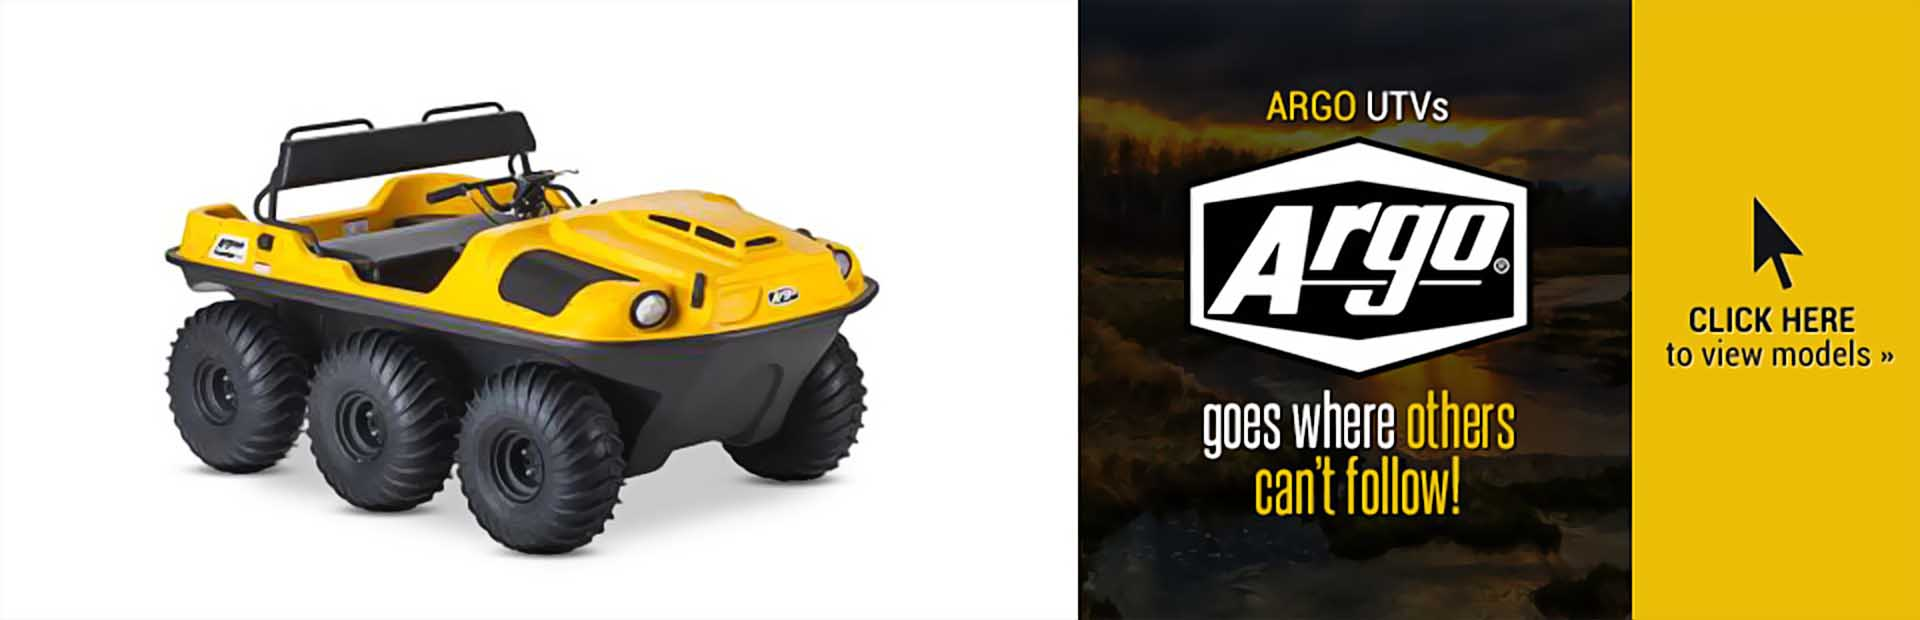 ARGO UTVs: Click here to view our selection!